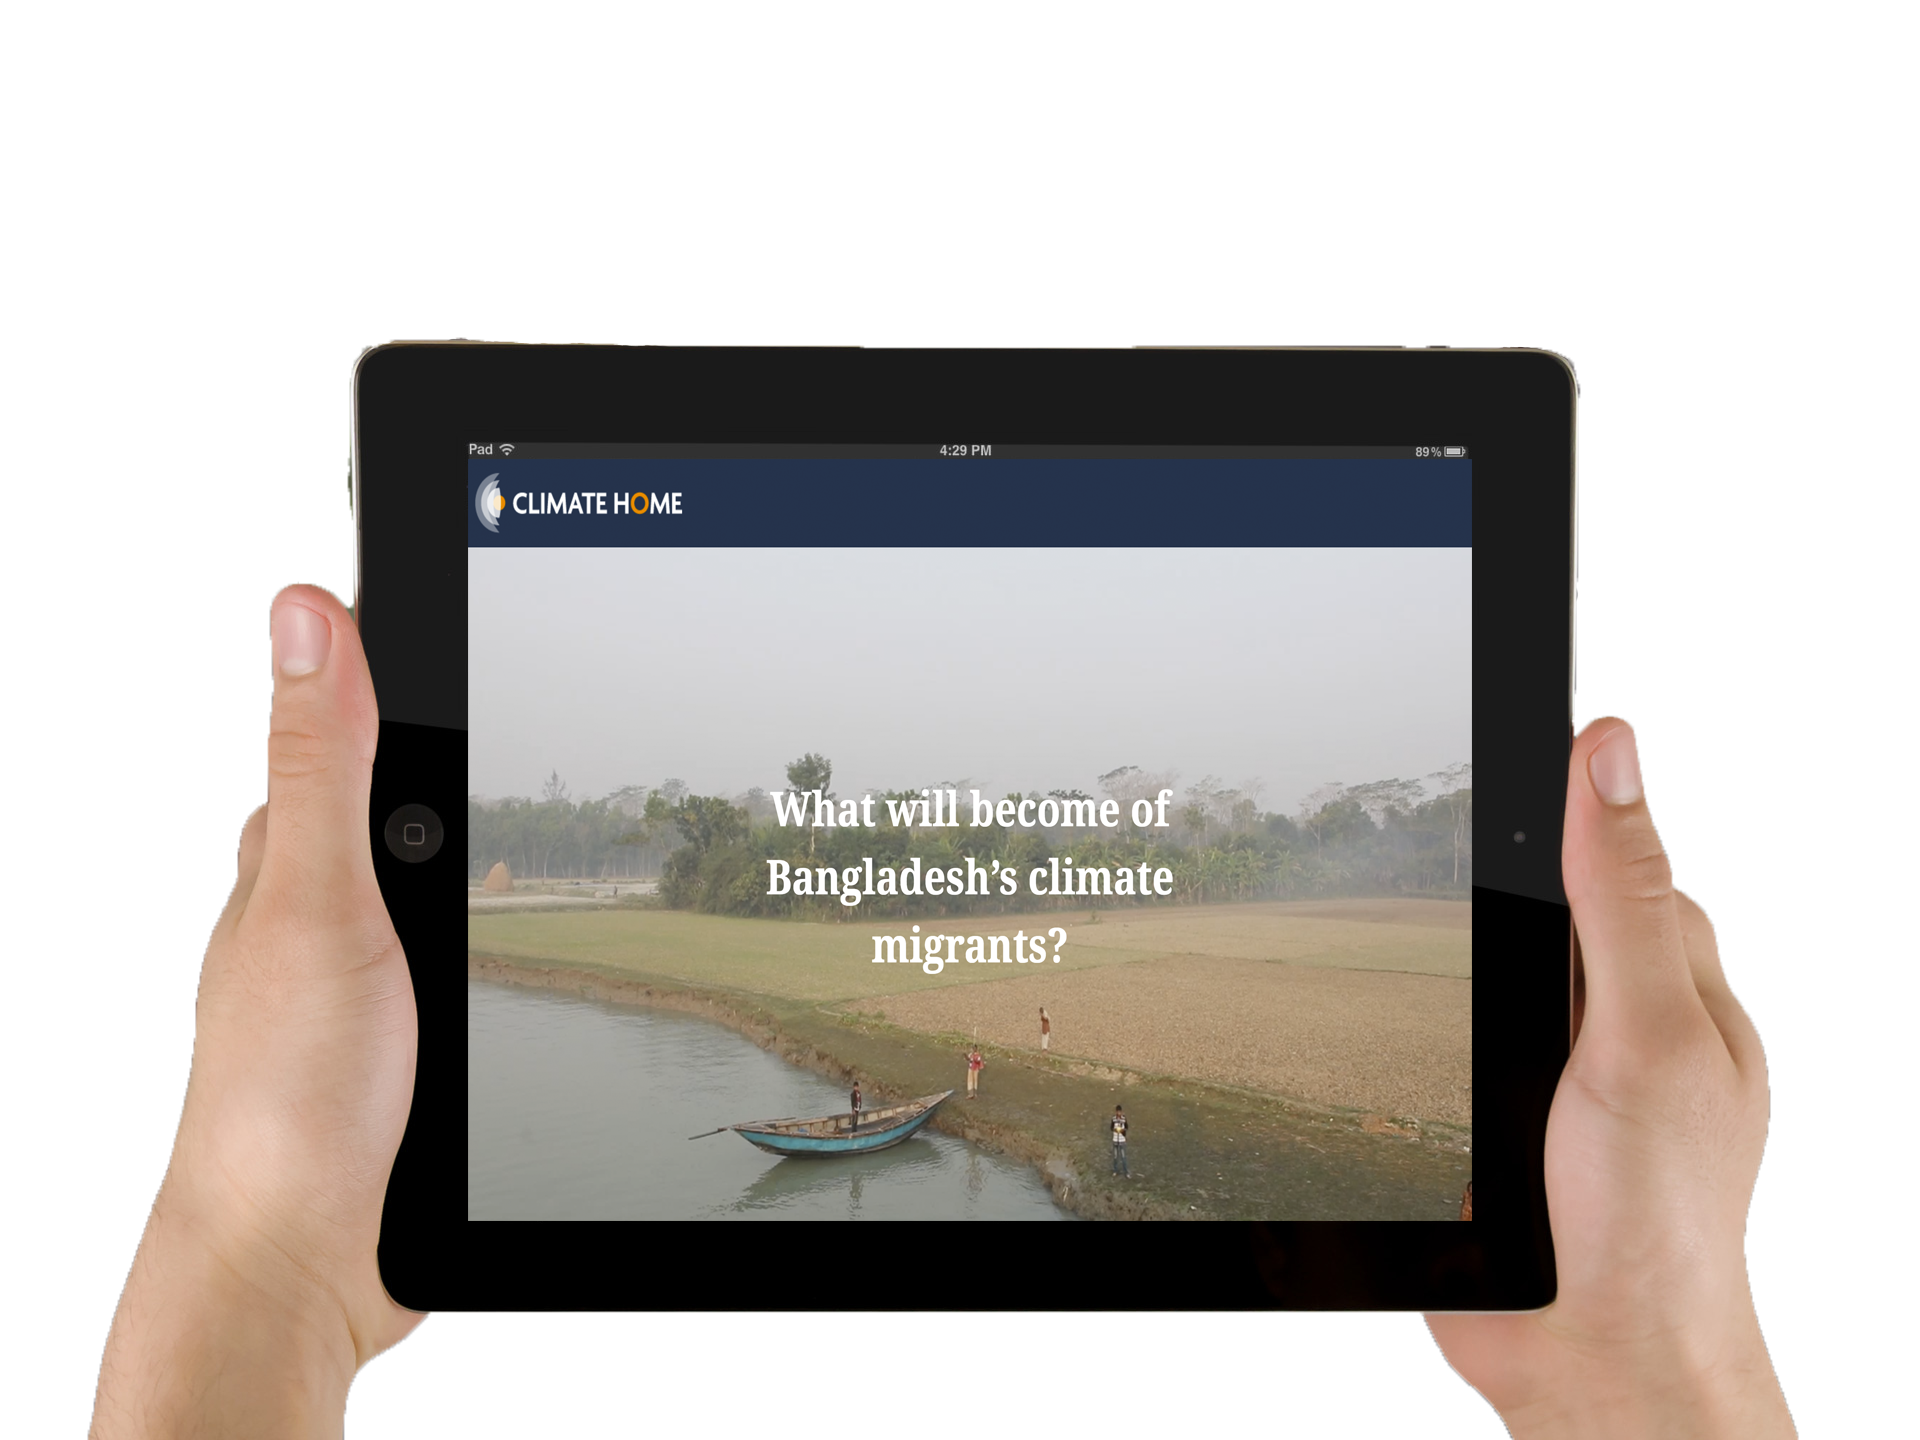 climate home case study ipad.png